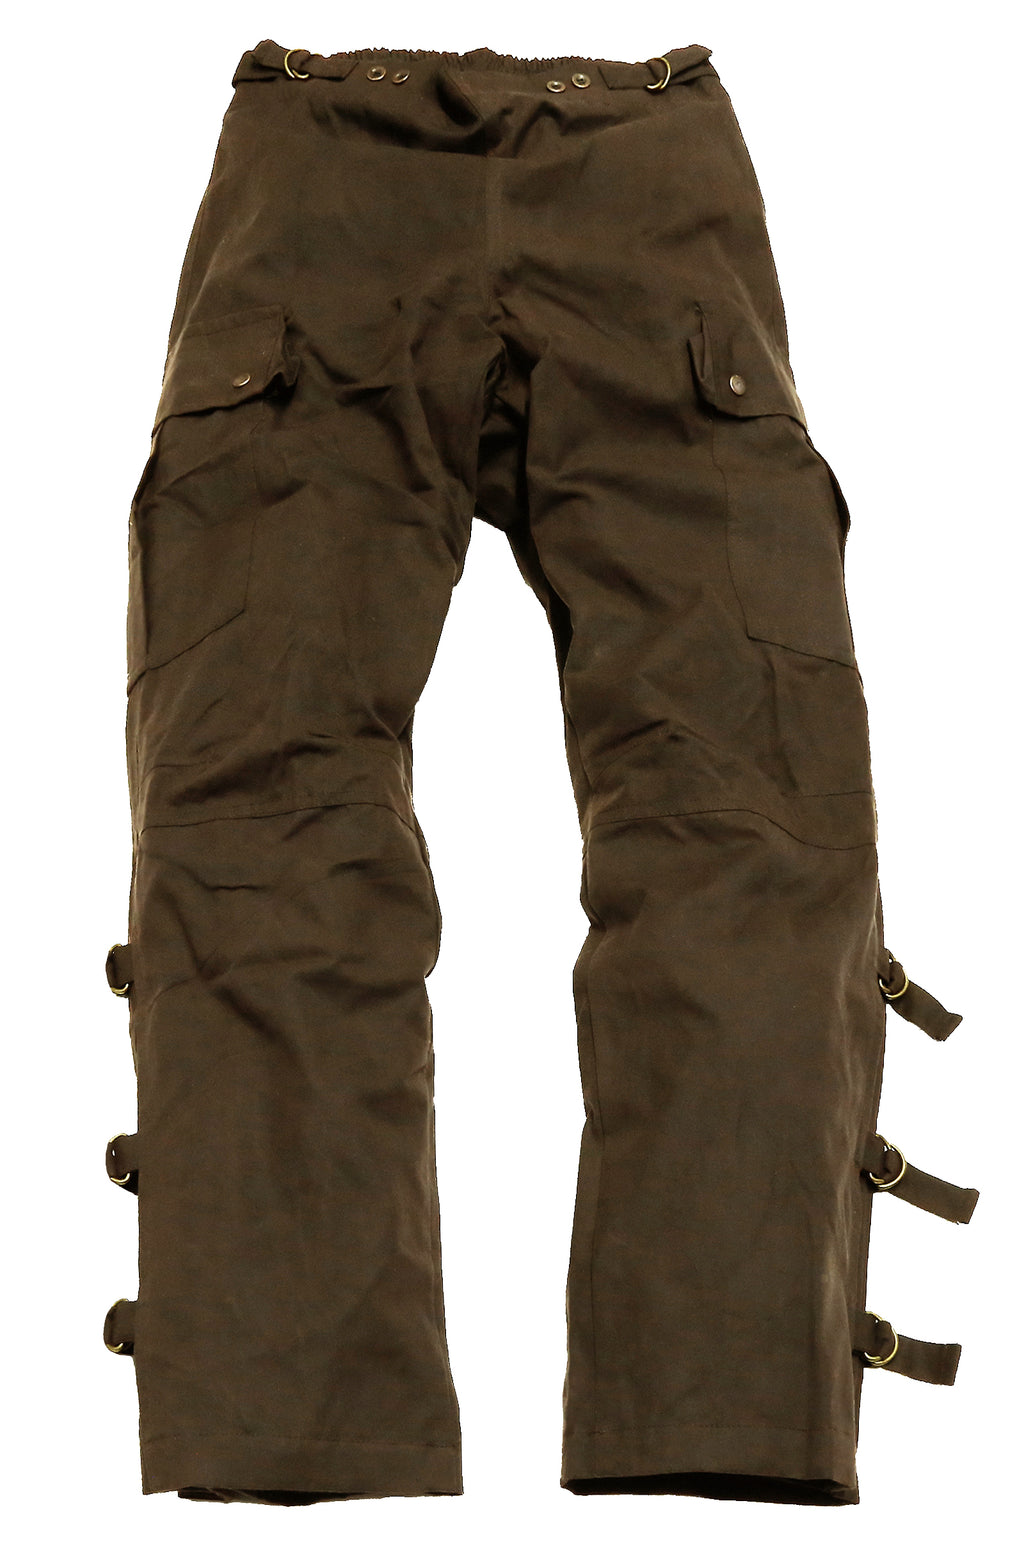 Weatherproof cover outdoor | Biker | Rider pants Walk-a-bout Pants- in brown - OUT OF AUSTRALIA | Kakadu Traders Australia